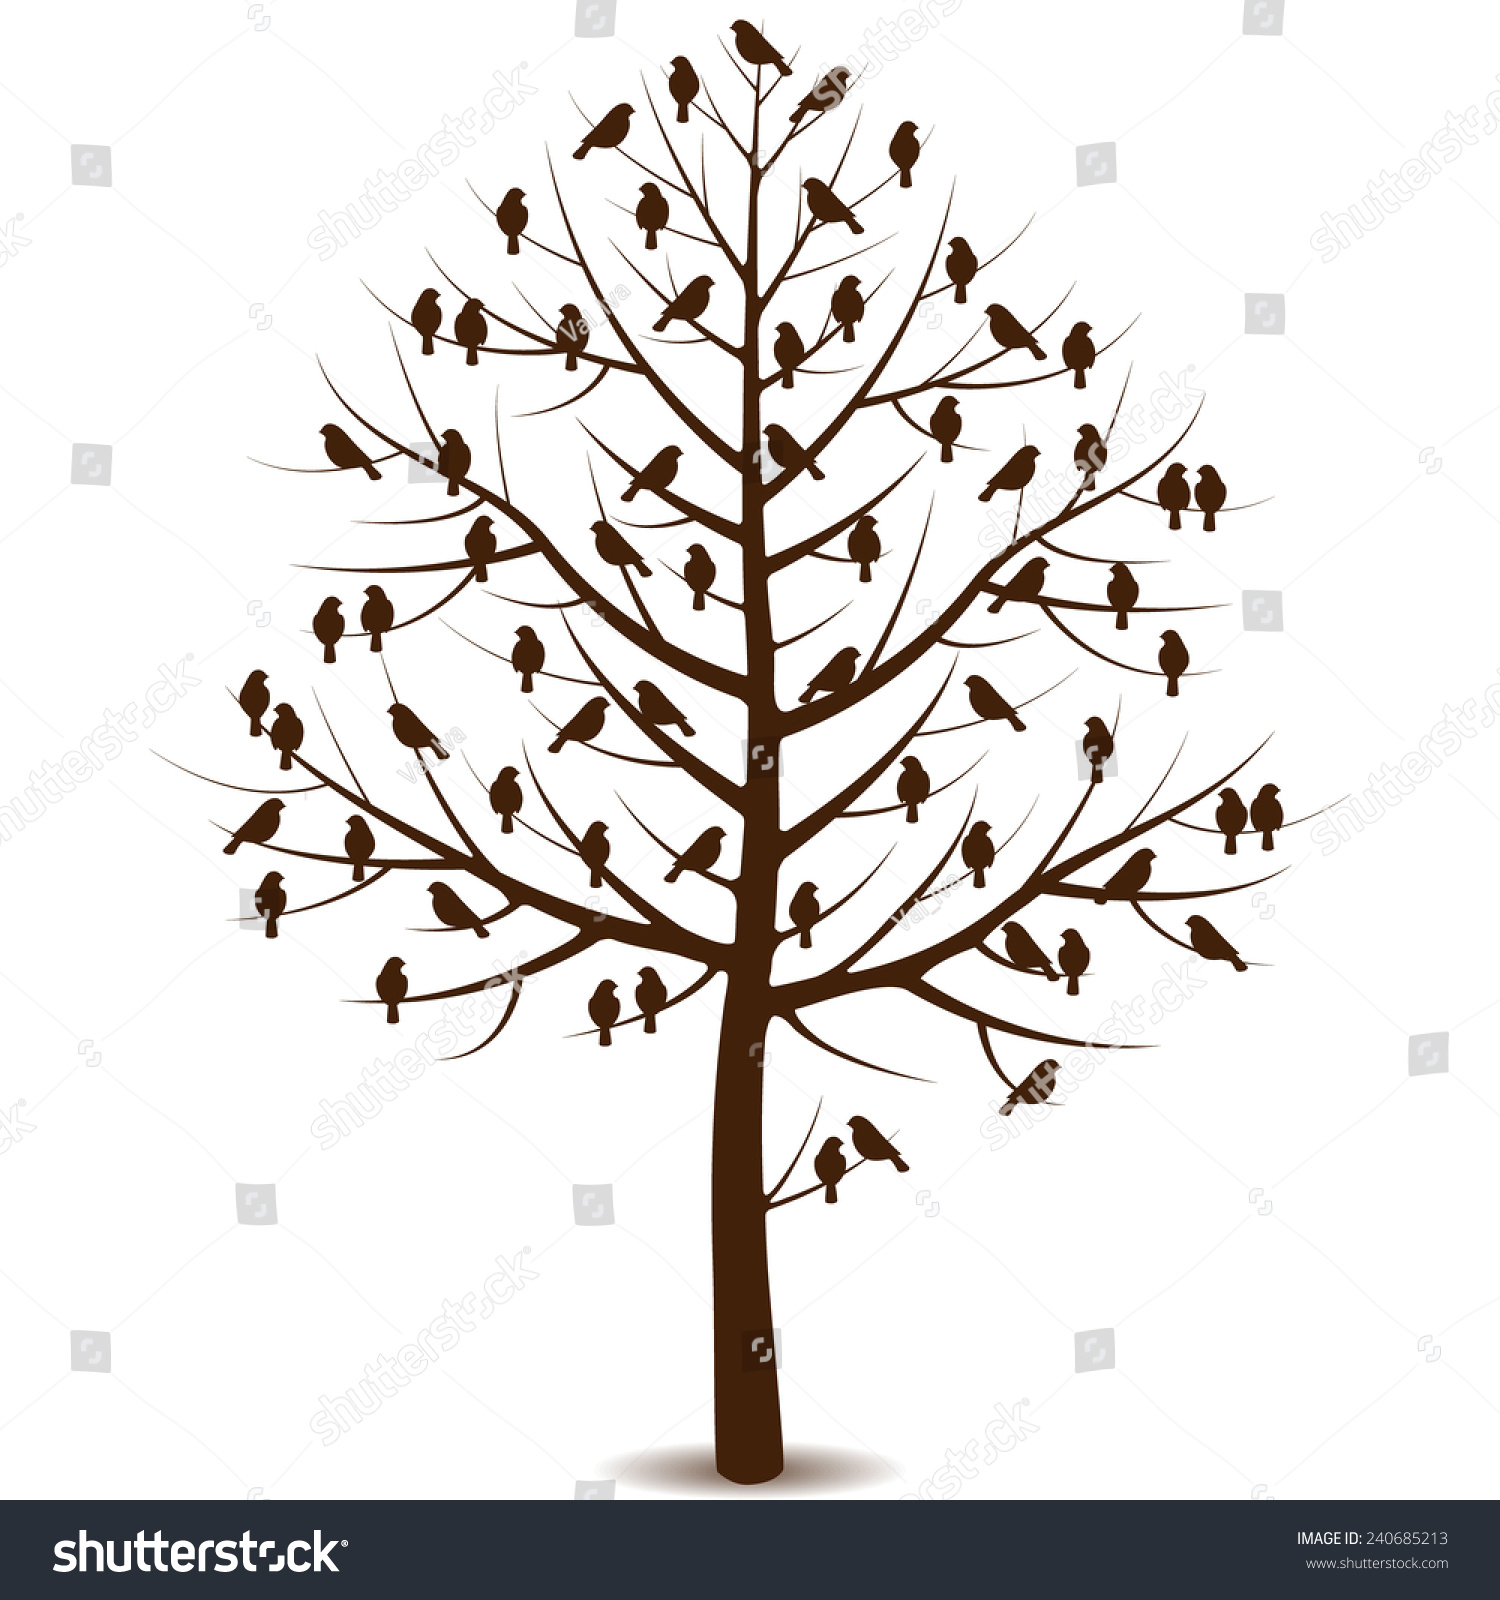 Silhouette Tree Without Leaves Sitting Birds Stock Vector